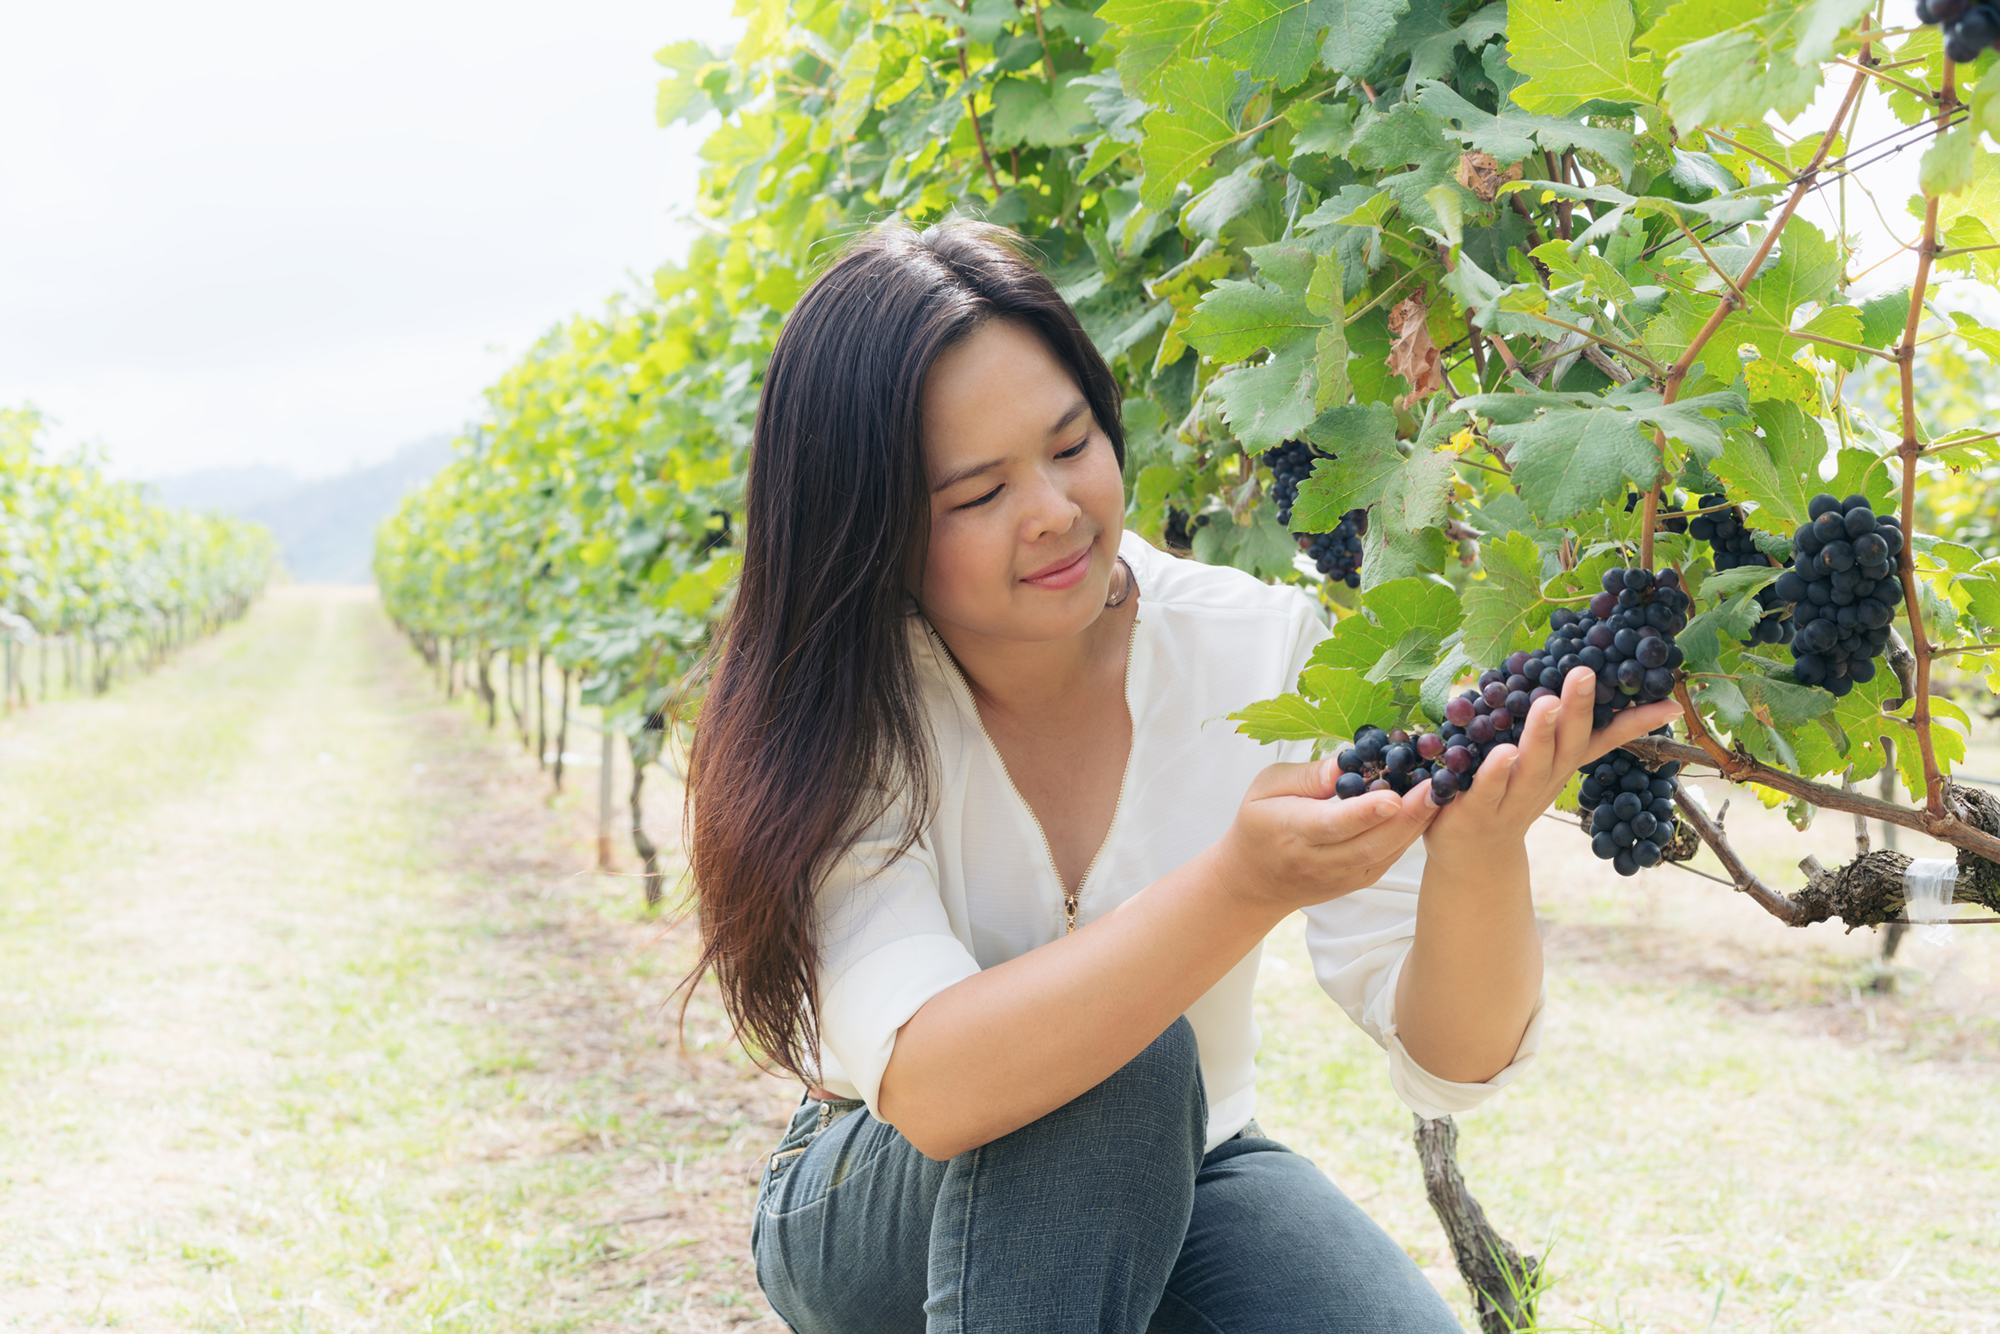 Vineyard woman worker checking wine grapes in vineyard. Winery, winemaker and worker concept. Sunny day in vineyard.